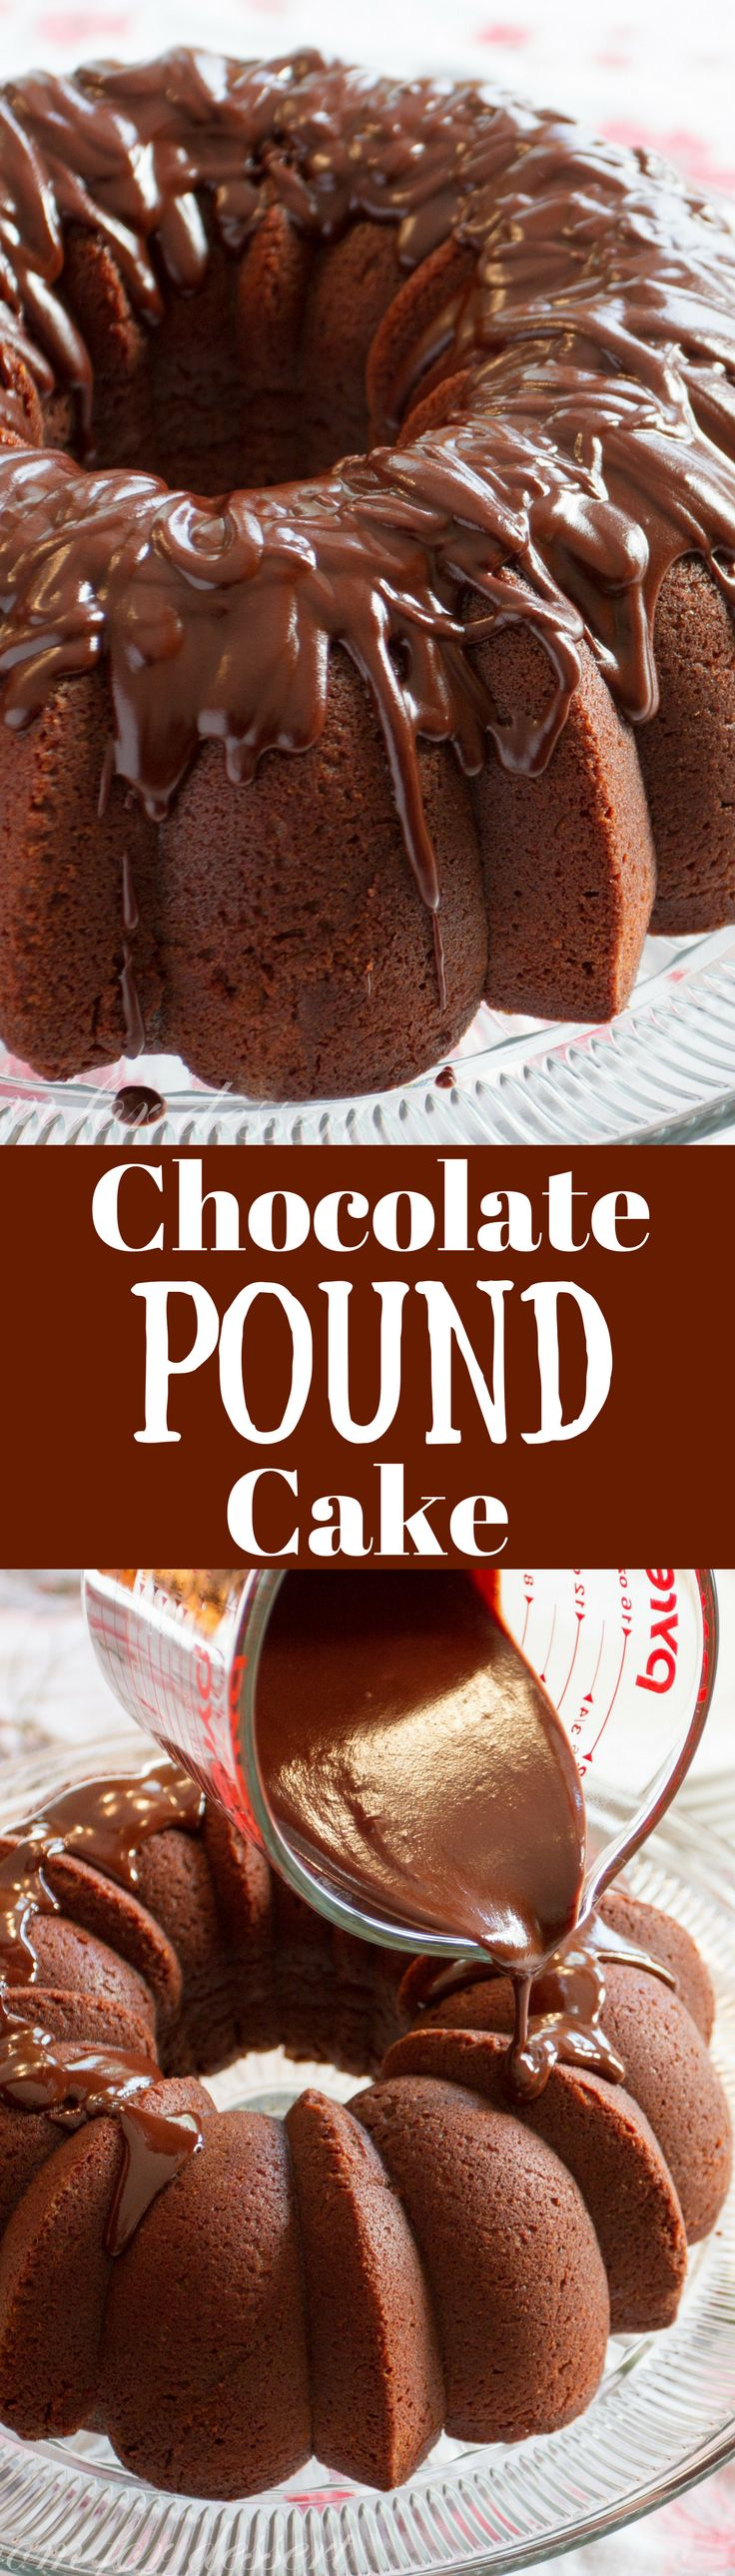 Chocolate Pound Cake ~ rich and decadent, this easy to make dessert is topped with a silky smooth chocolate glaze - perfect for the chocoholic in your life!  www.savingdessert.com